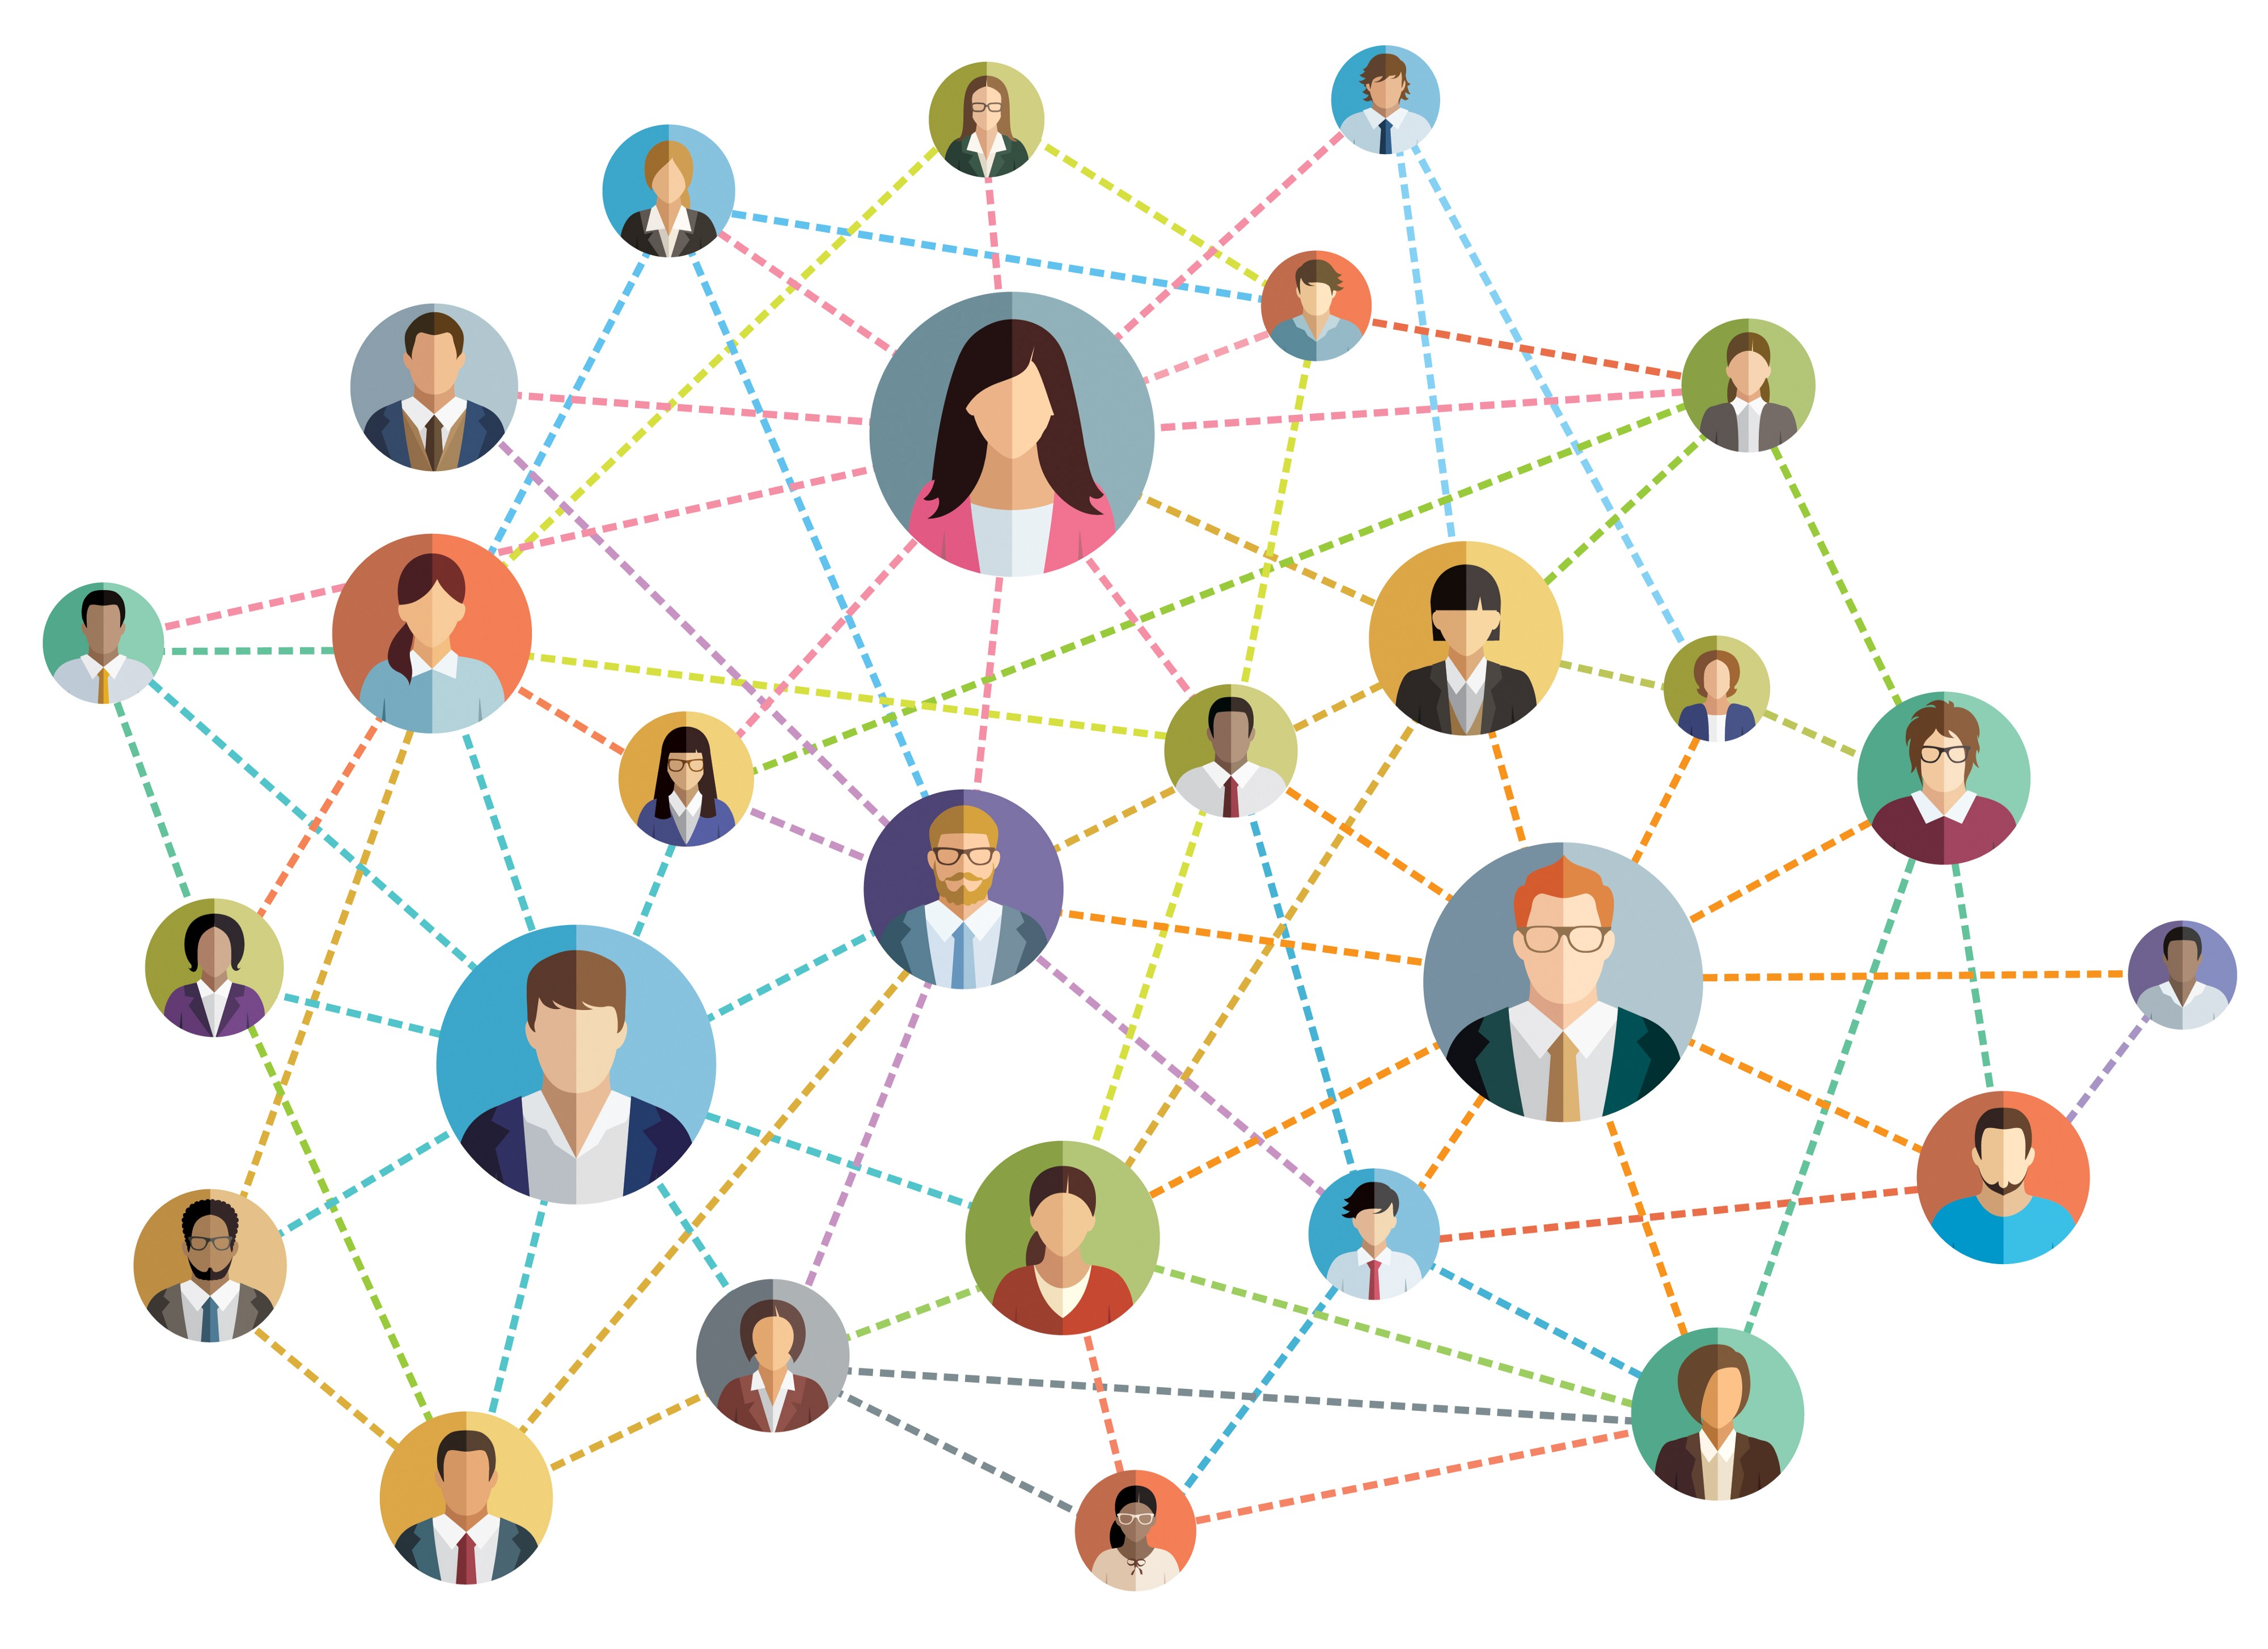 Image depicting a network of people. Networking is a key career skill.